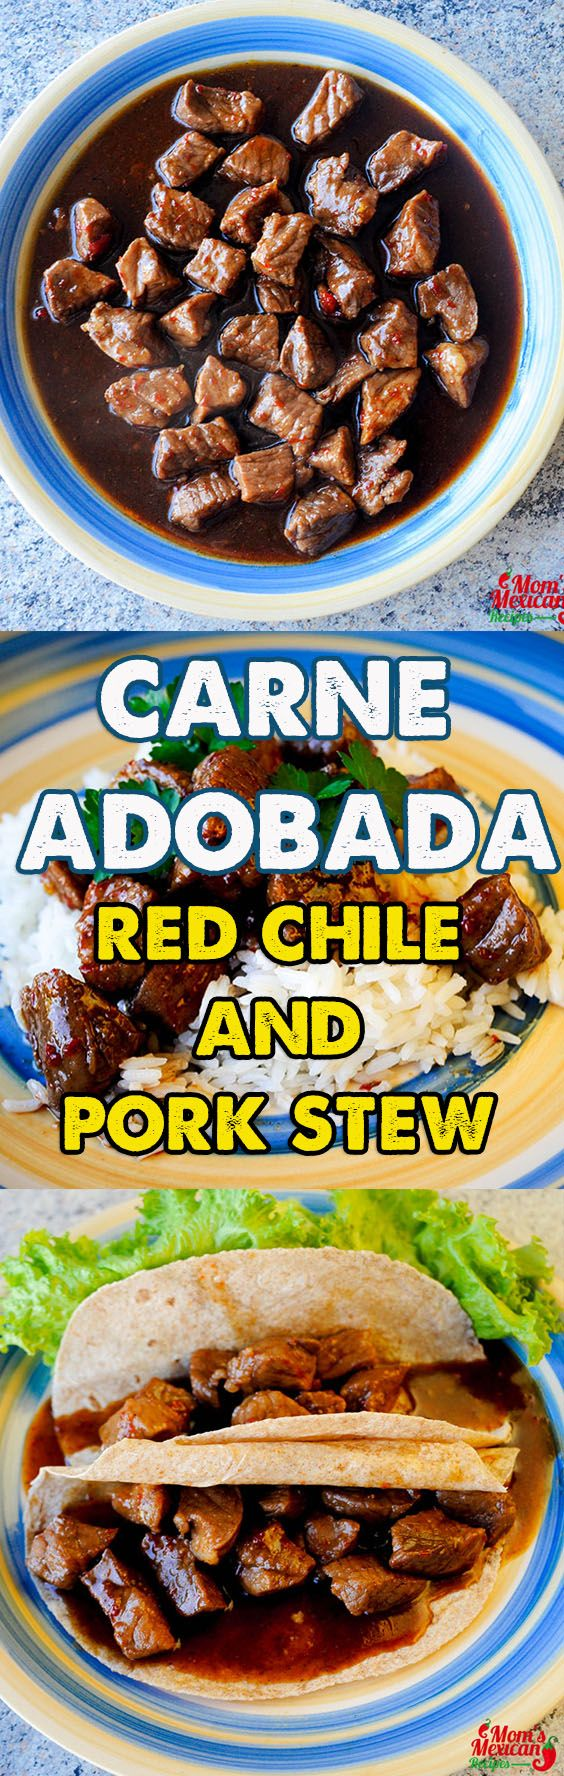 Red Chile and Pork Stew or Carne Adobada Recipe is a favorite in New Mexico. It is a well-blended pork recipe that has a very strong taste and no one can refrain from eating it.